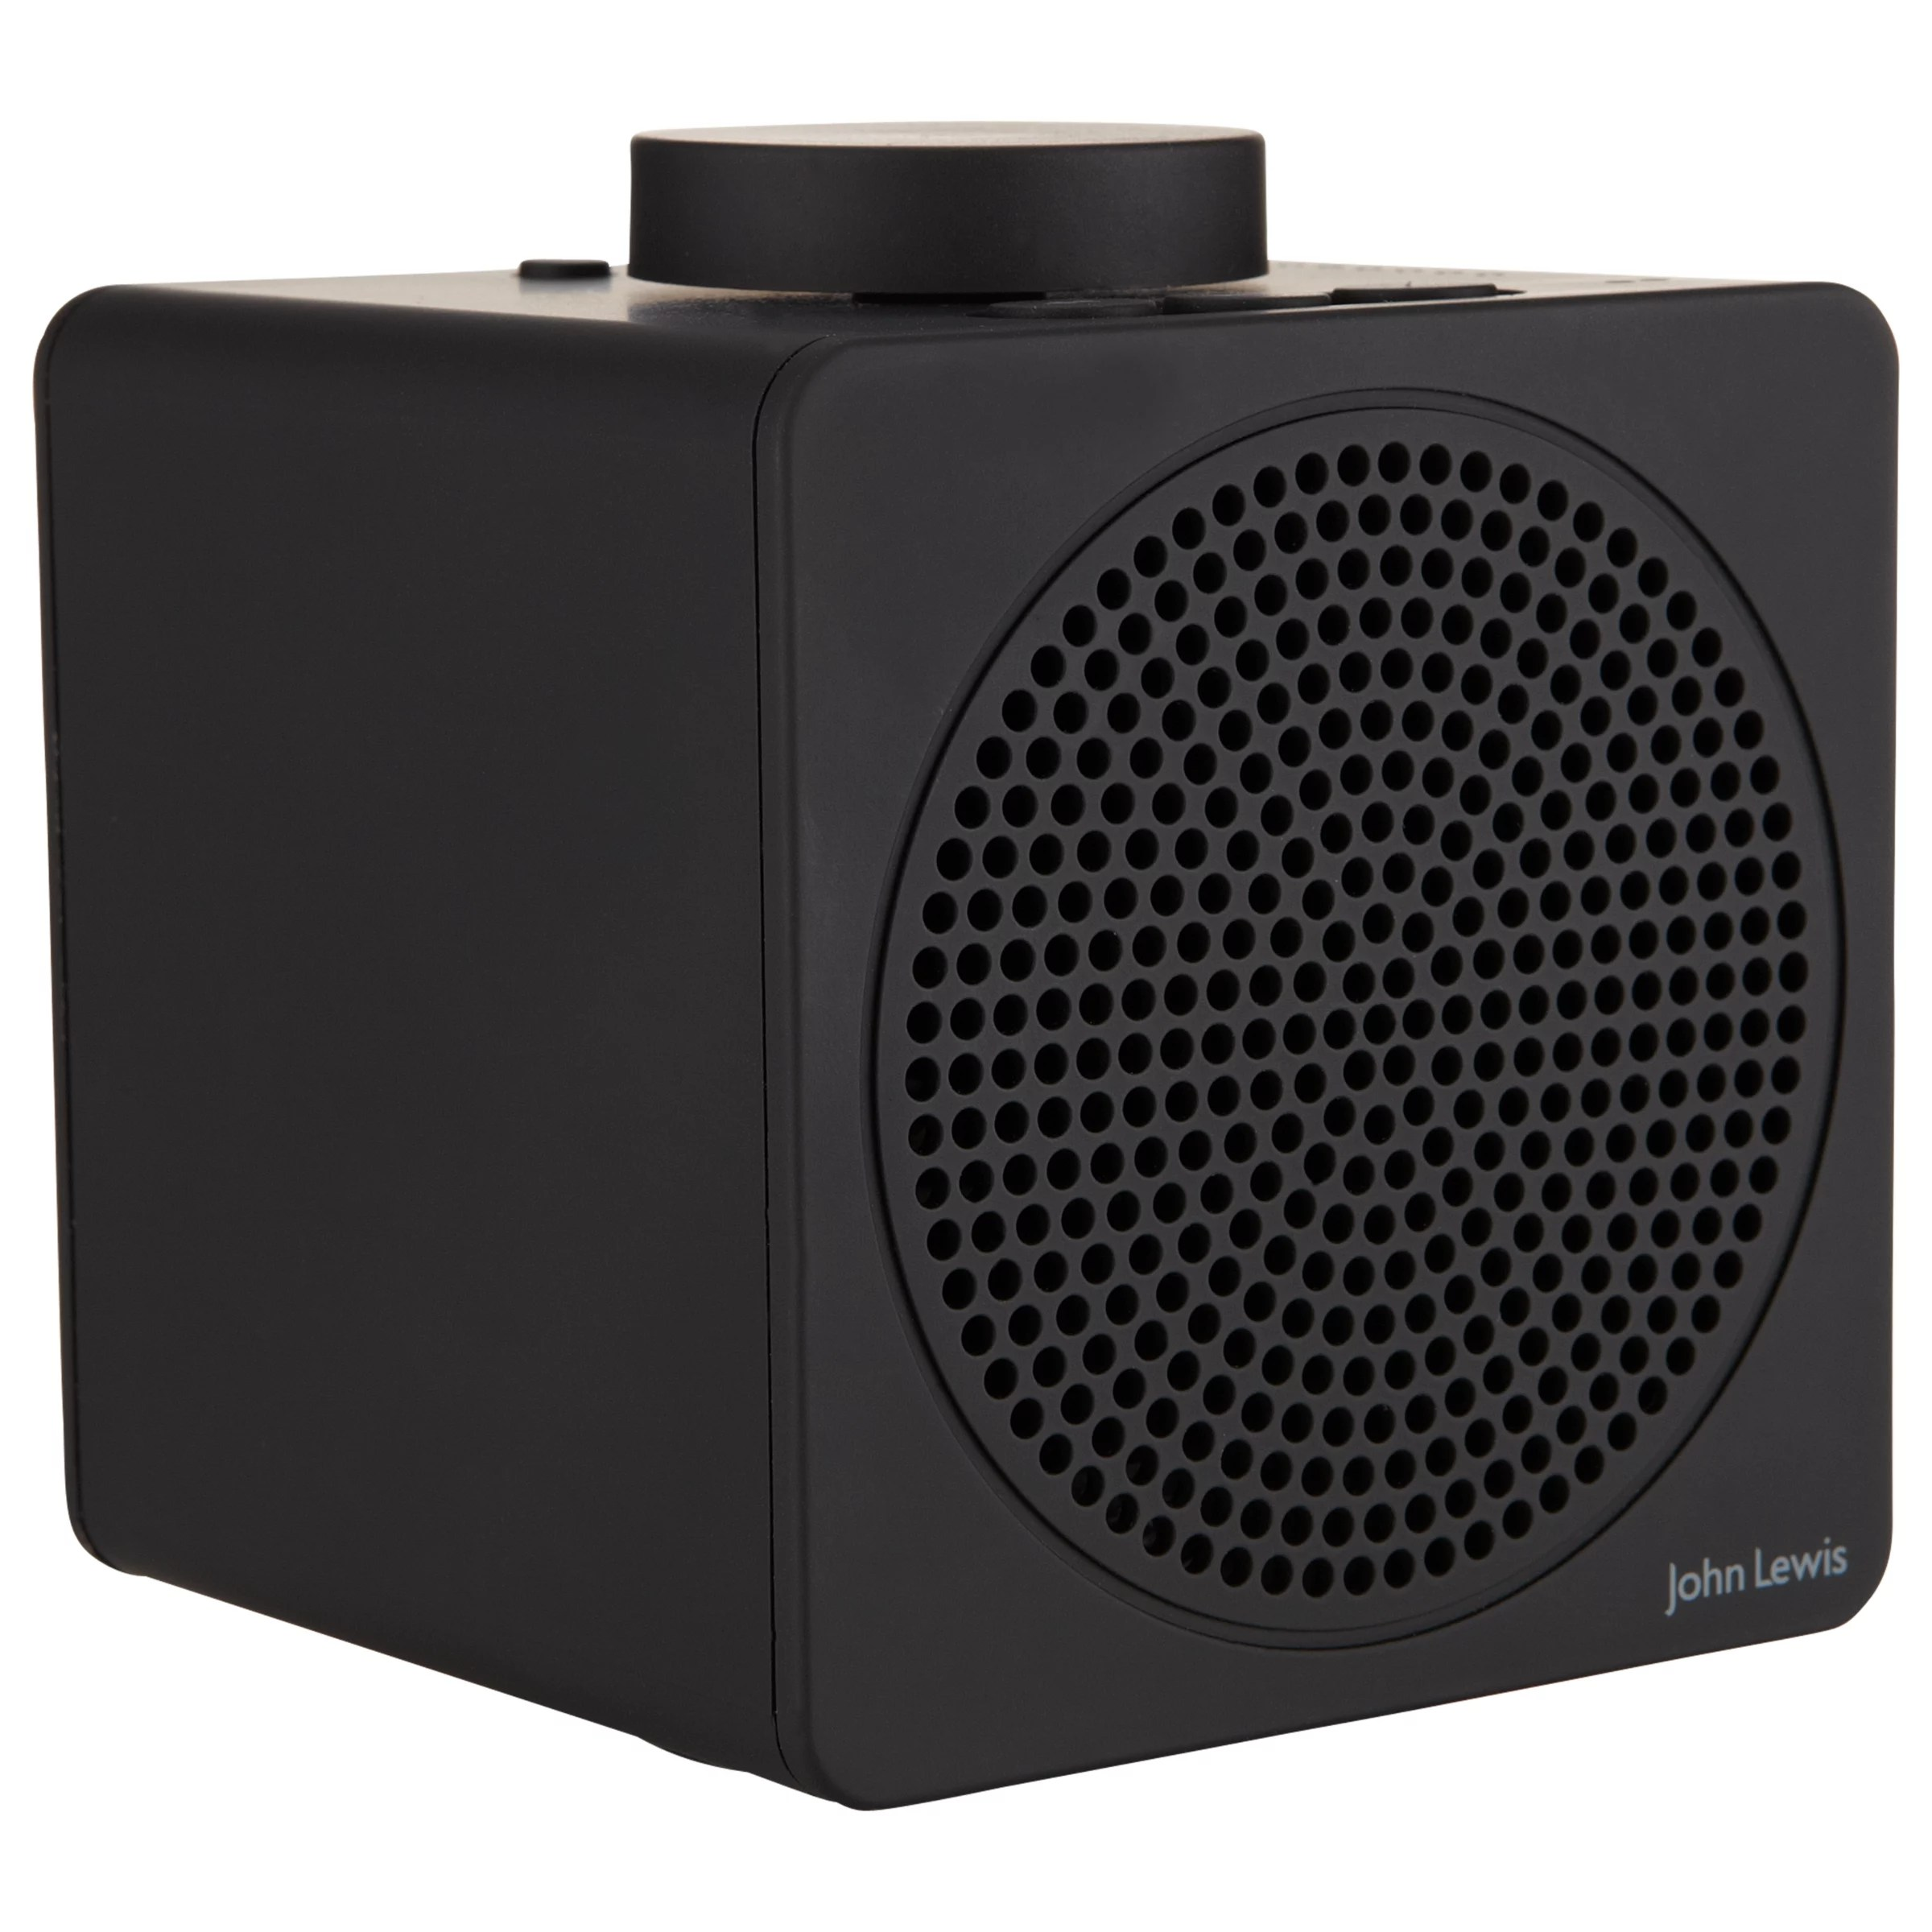 Trolley Lautsprecher Idance John Lewis Spectrum Cube Bluetooth Portable Nfc Speaker At John